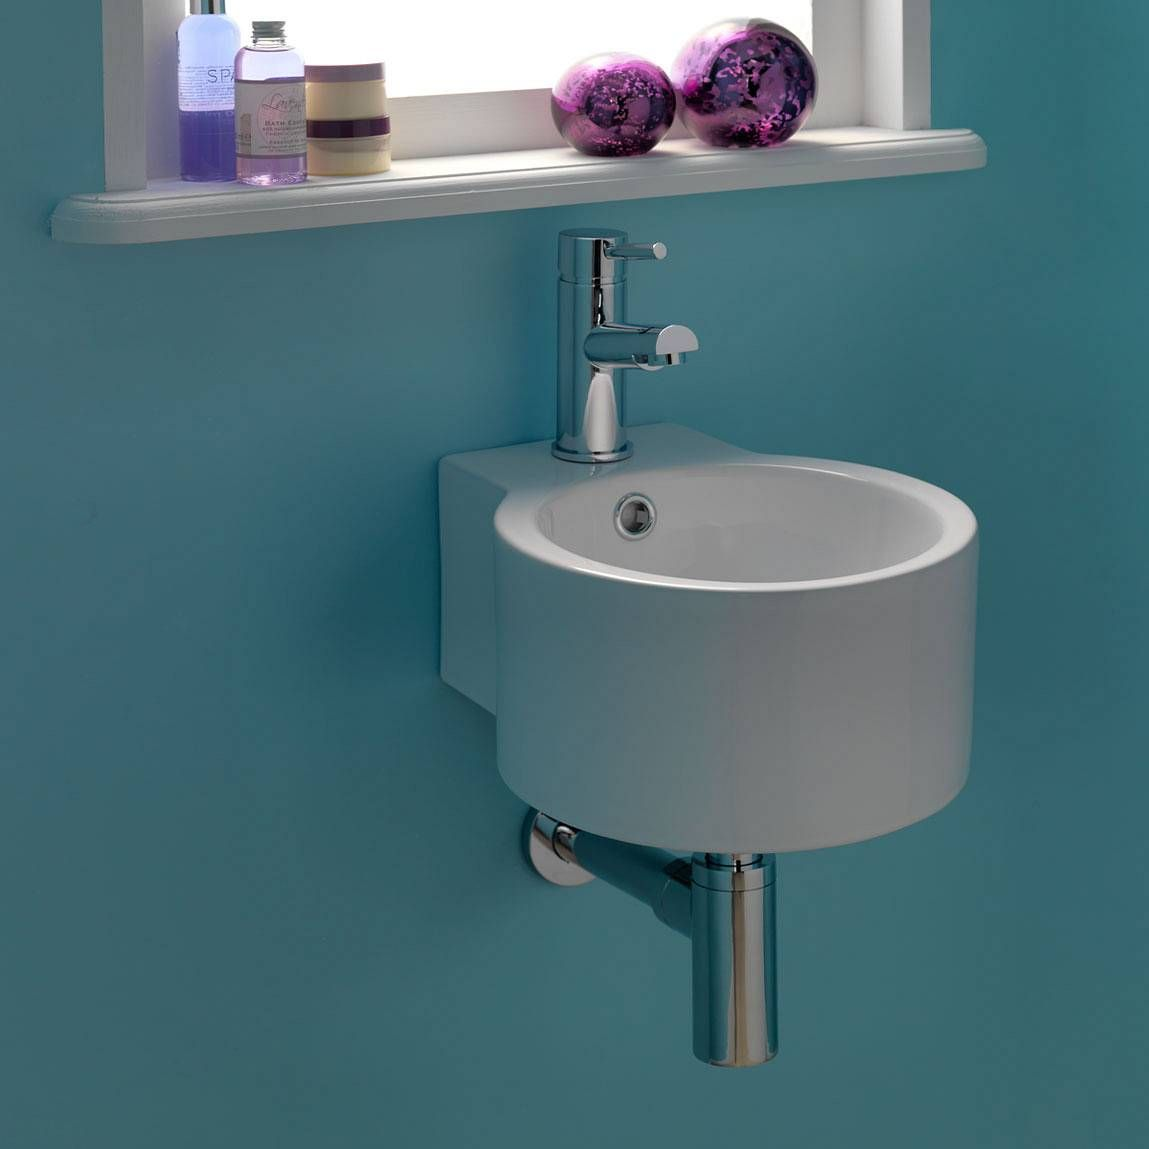 pavia wall mounted basin now only 4900 from victoria plumb - Bathroom Accessories Victoria Plumb